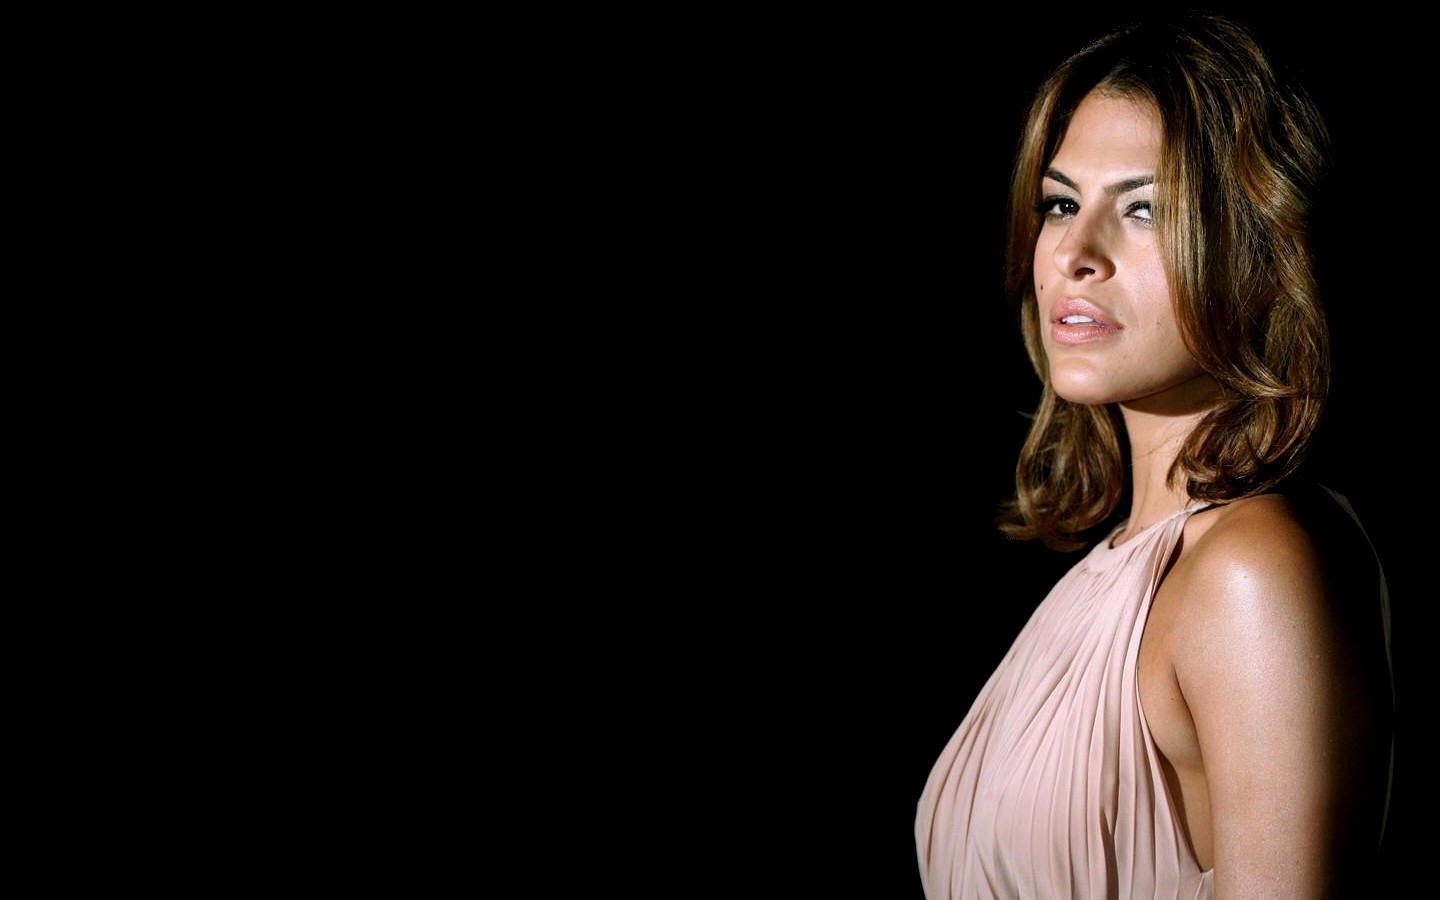 Free download Eva Mendes background ID:467282 hd 1440x900 for PC